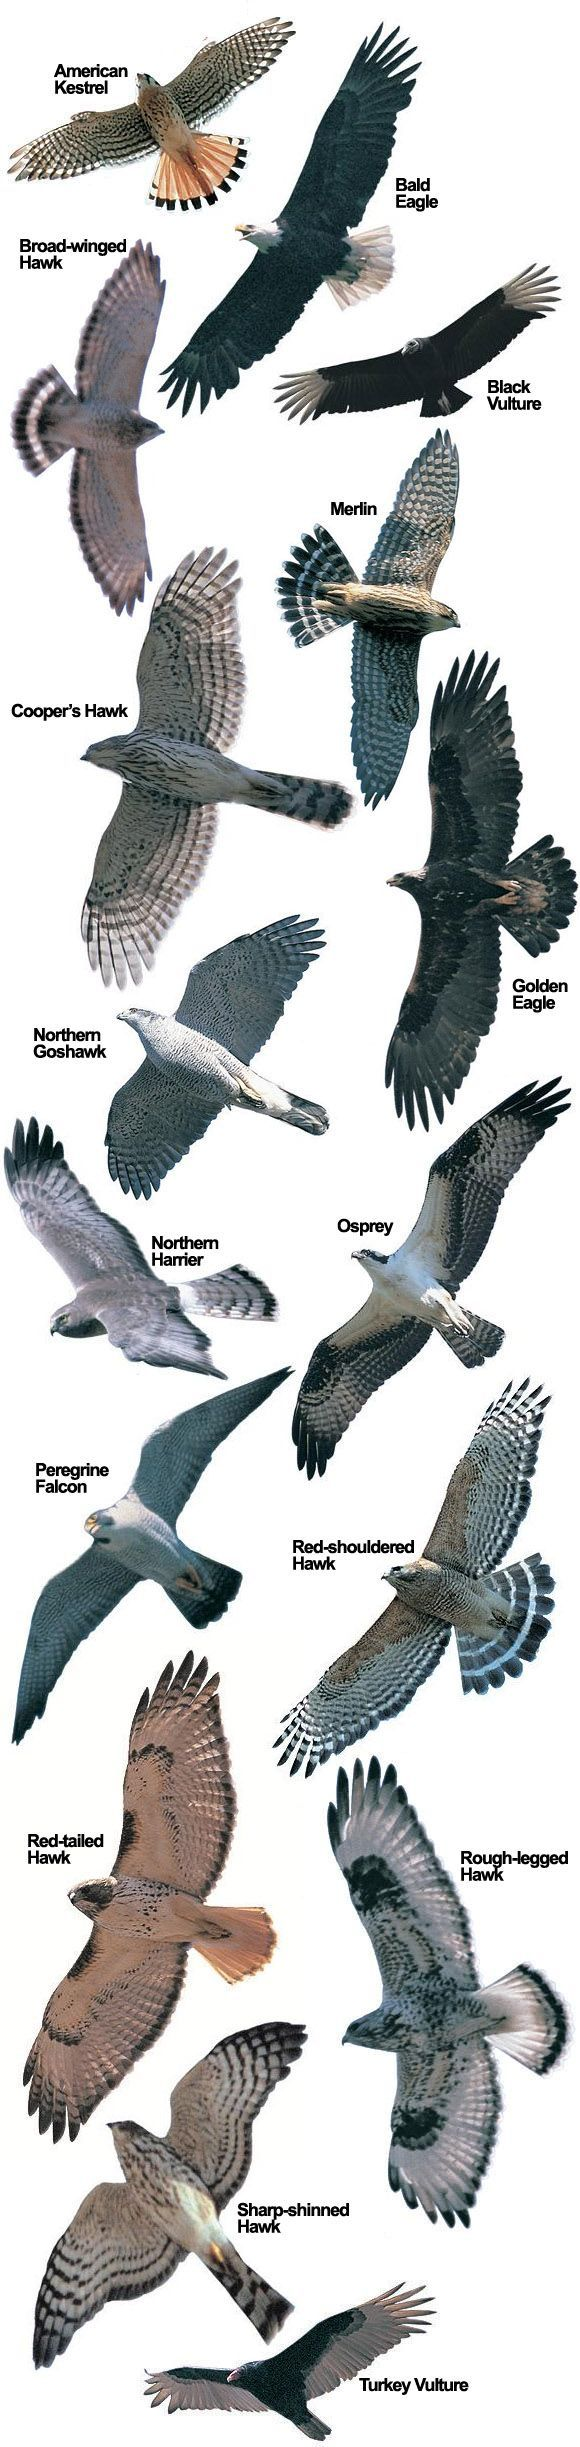 Hawk Species at Hawk Mountain | Hawk Mountain Sanctuary: Raptor Conservation, Education, Observation & Research: